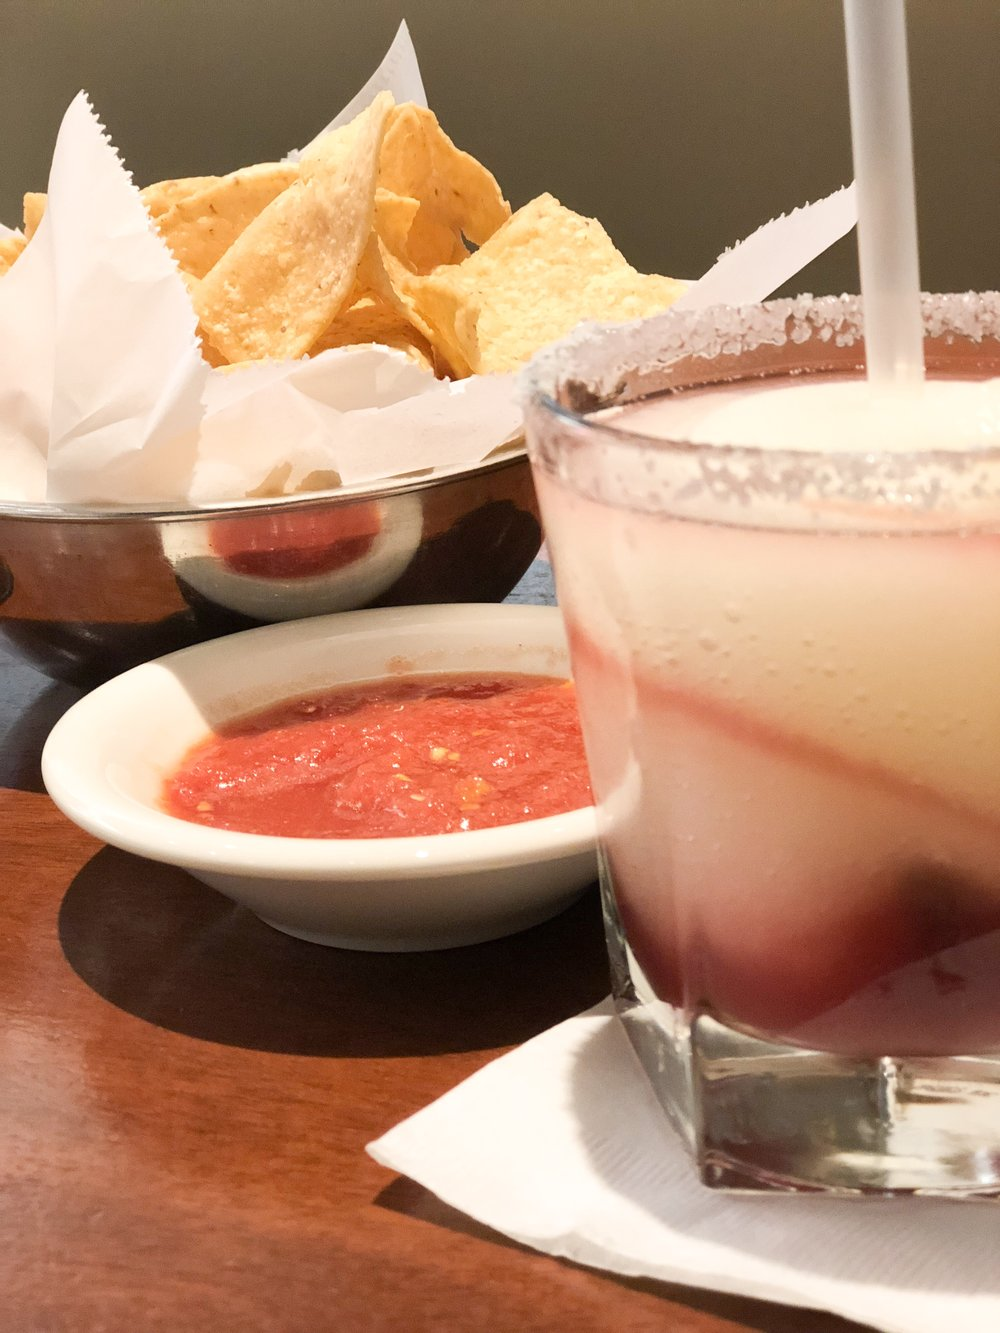 Cheers to chips and salsa and mambo taxis!